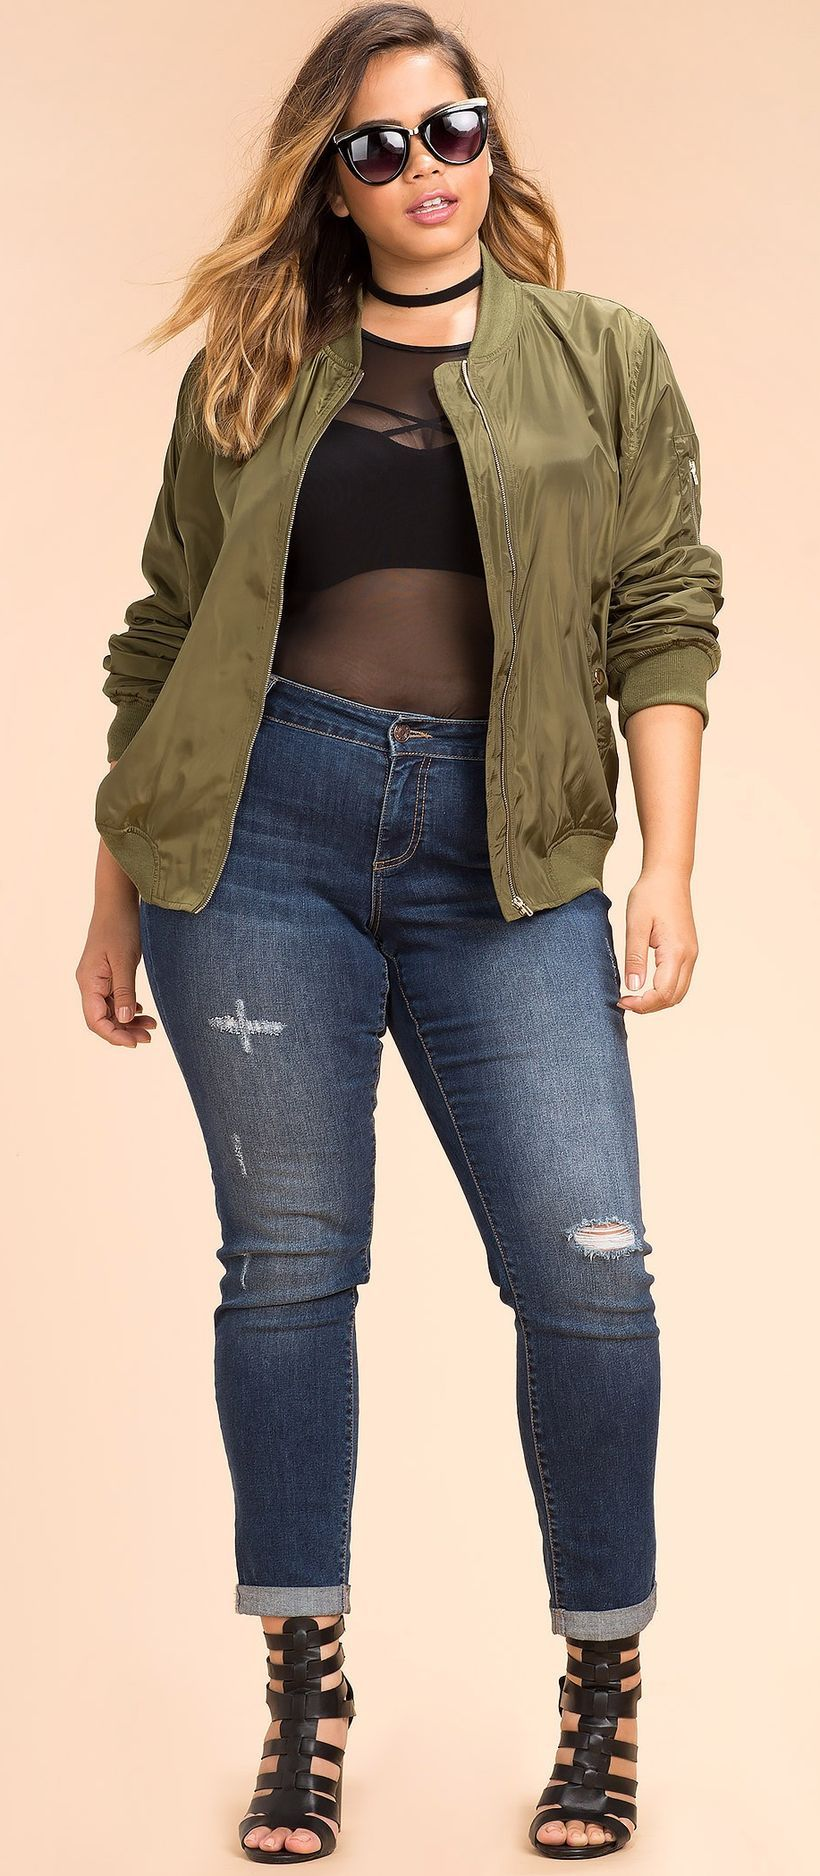 6f14e32bb12 130 Stylish Plus Size Outfits Ideas for Winter 2017 that You Must Try  https